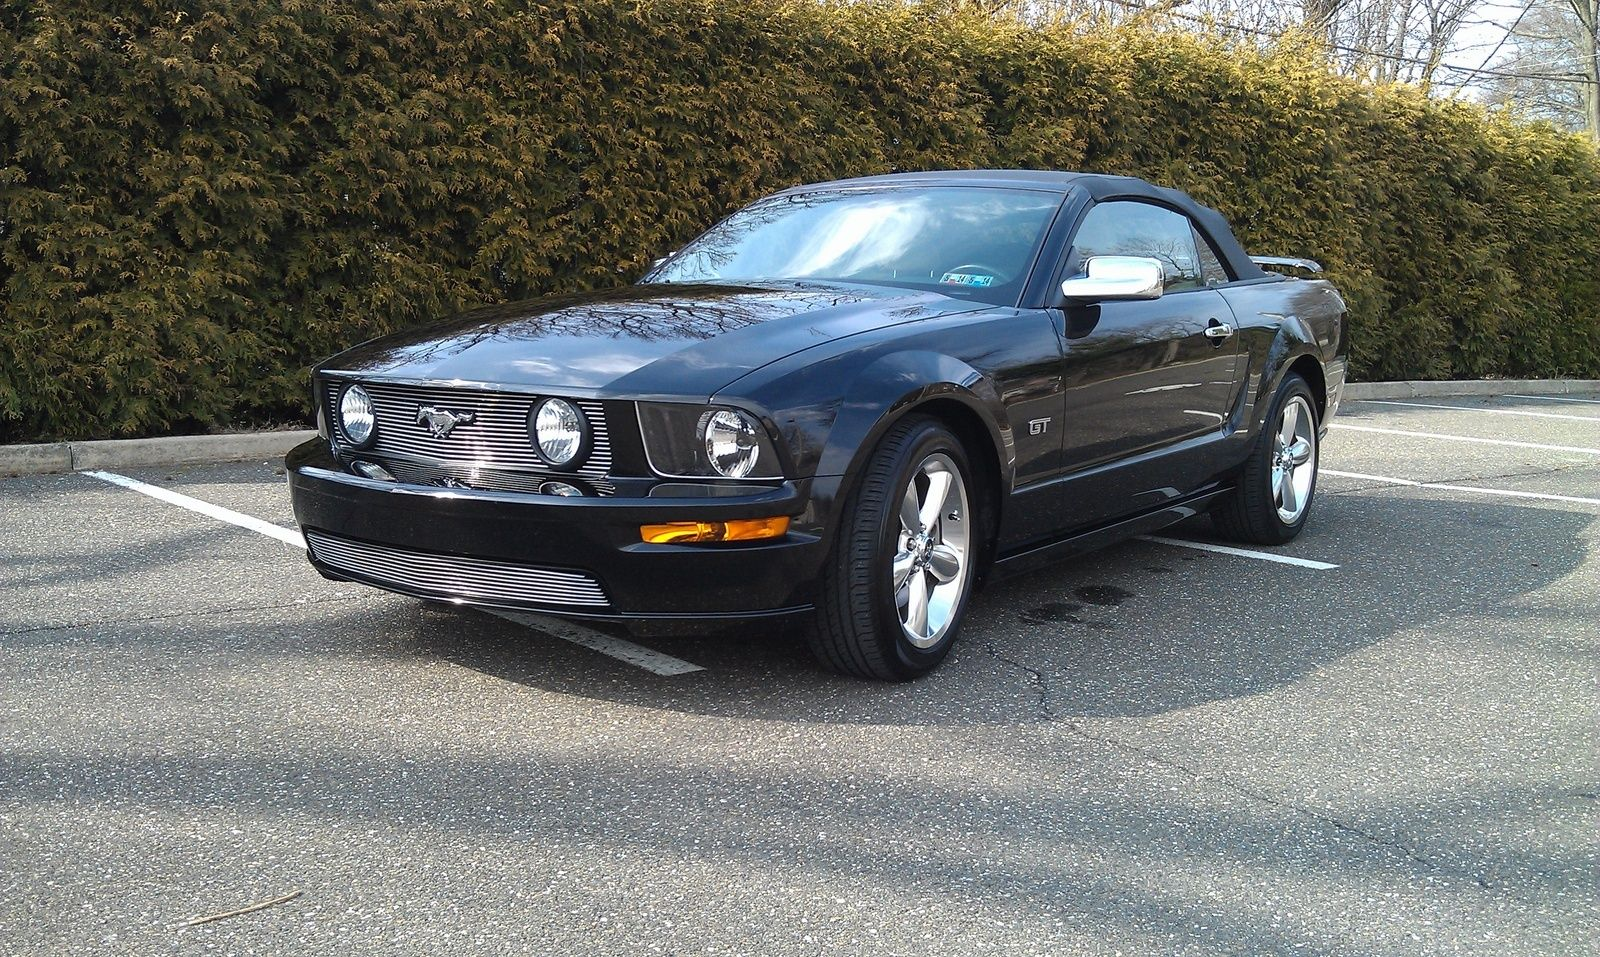 2006 Ford Mustang Pictures Cargurus Ford Mustang 2006 Ford